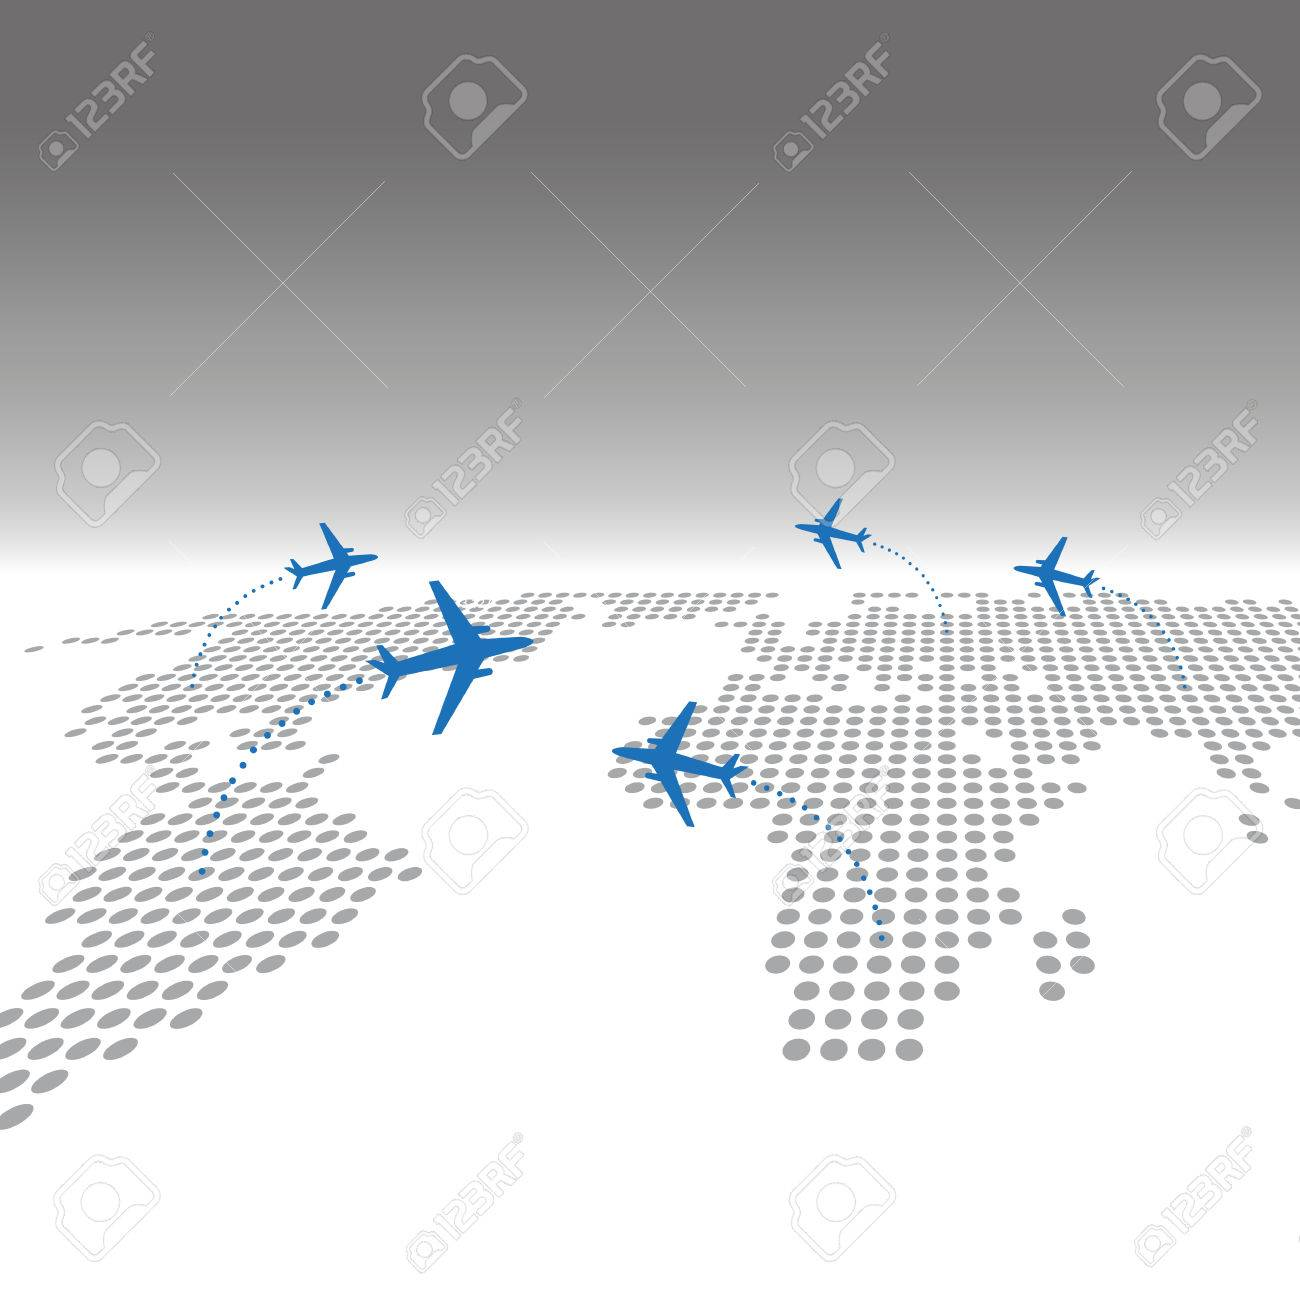 Travel airplane with dotted world map infographic web background travel airplane with dotted world map infographic web background stock vector 62837129 gumiabroncs Choice Image